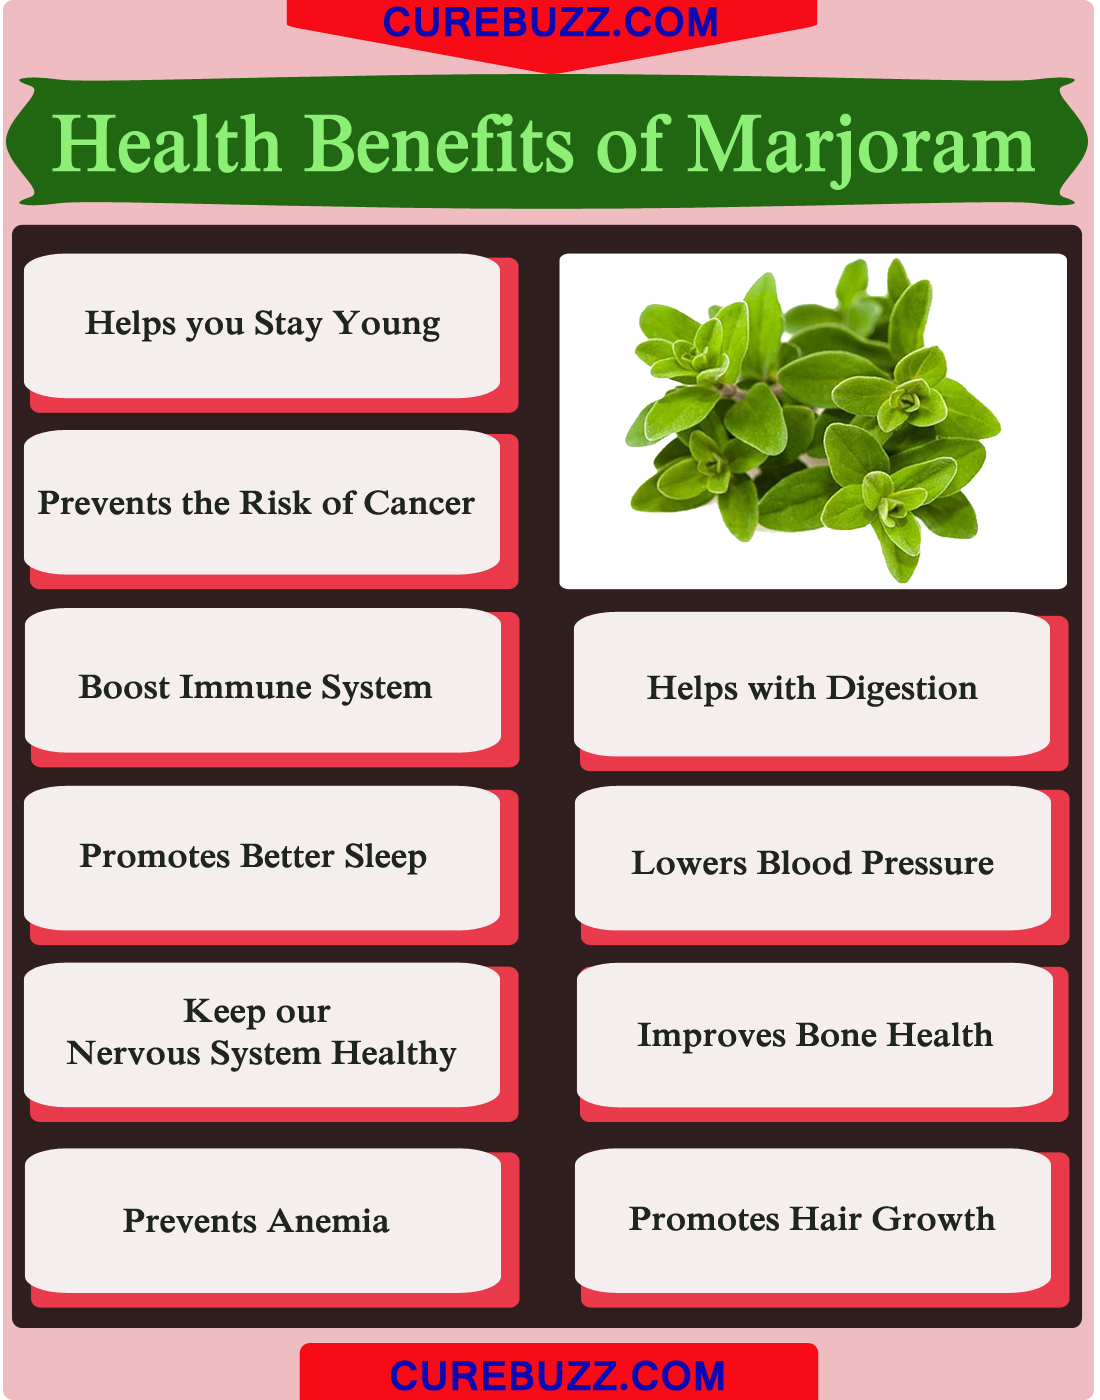 Health Benefits of Marjoram